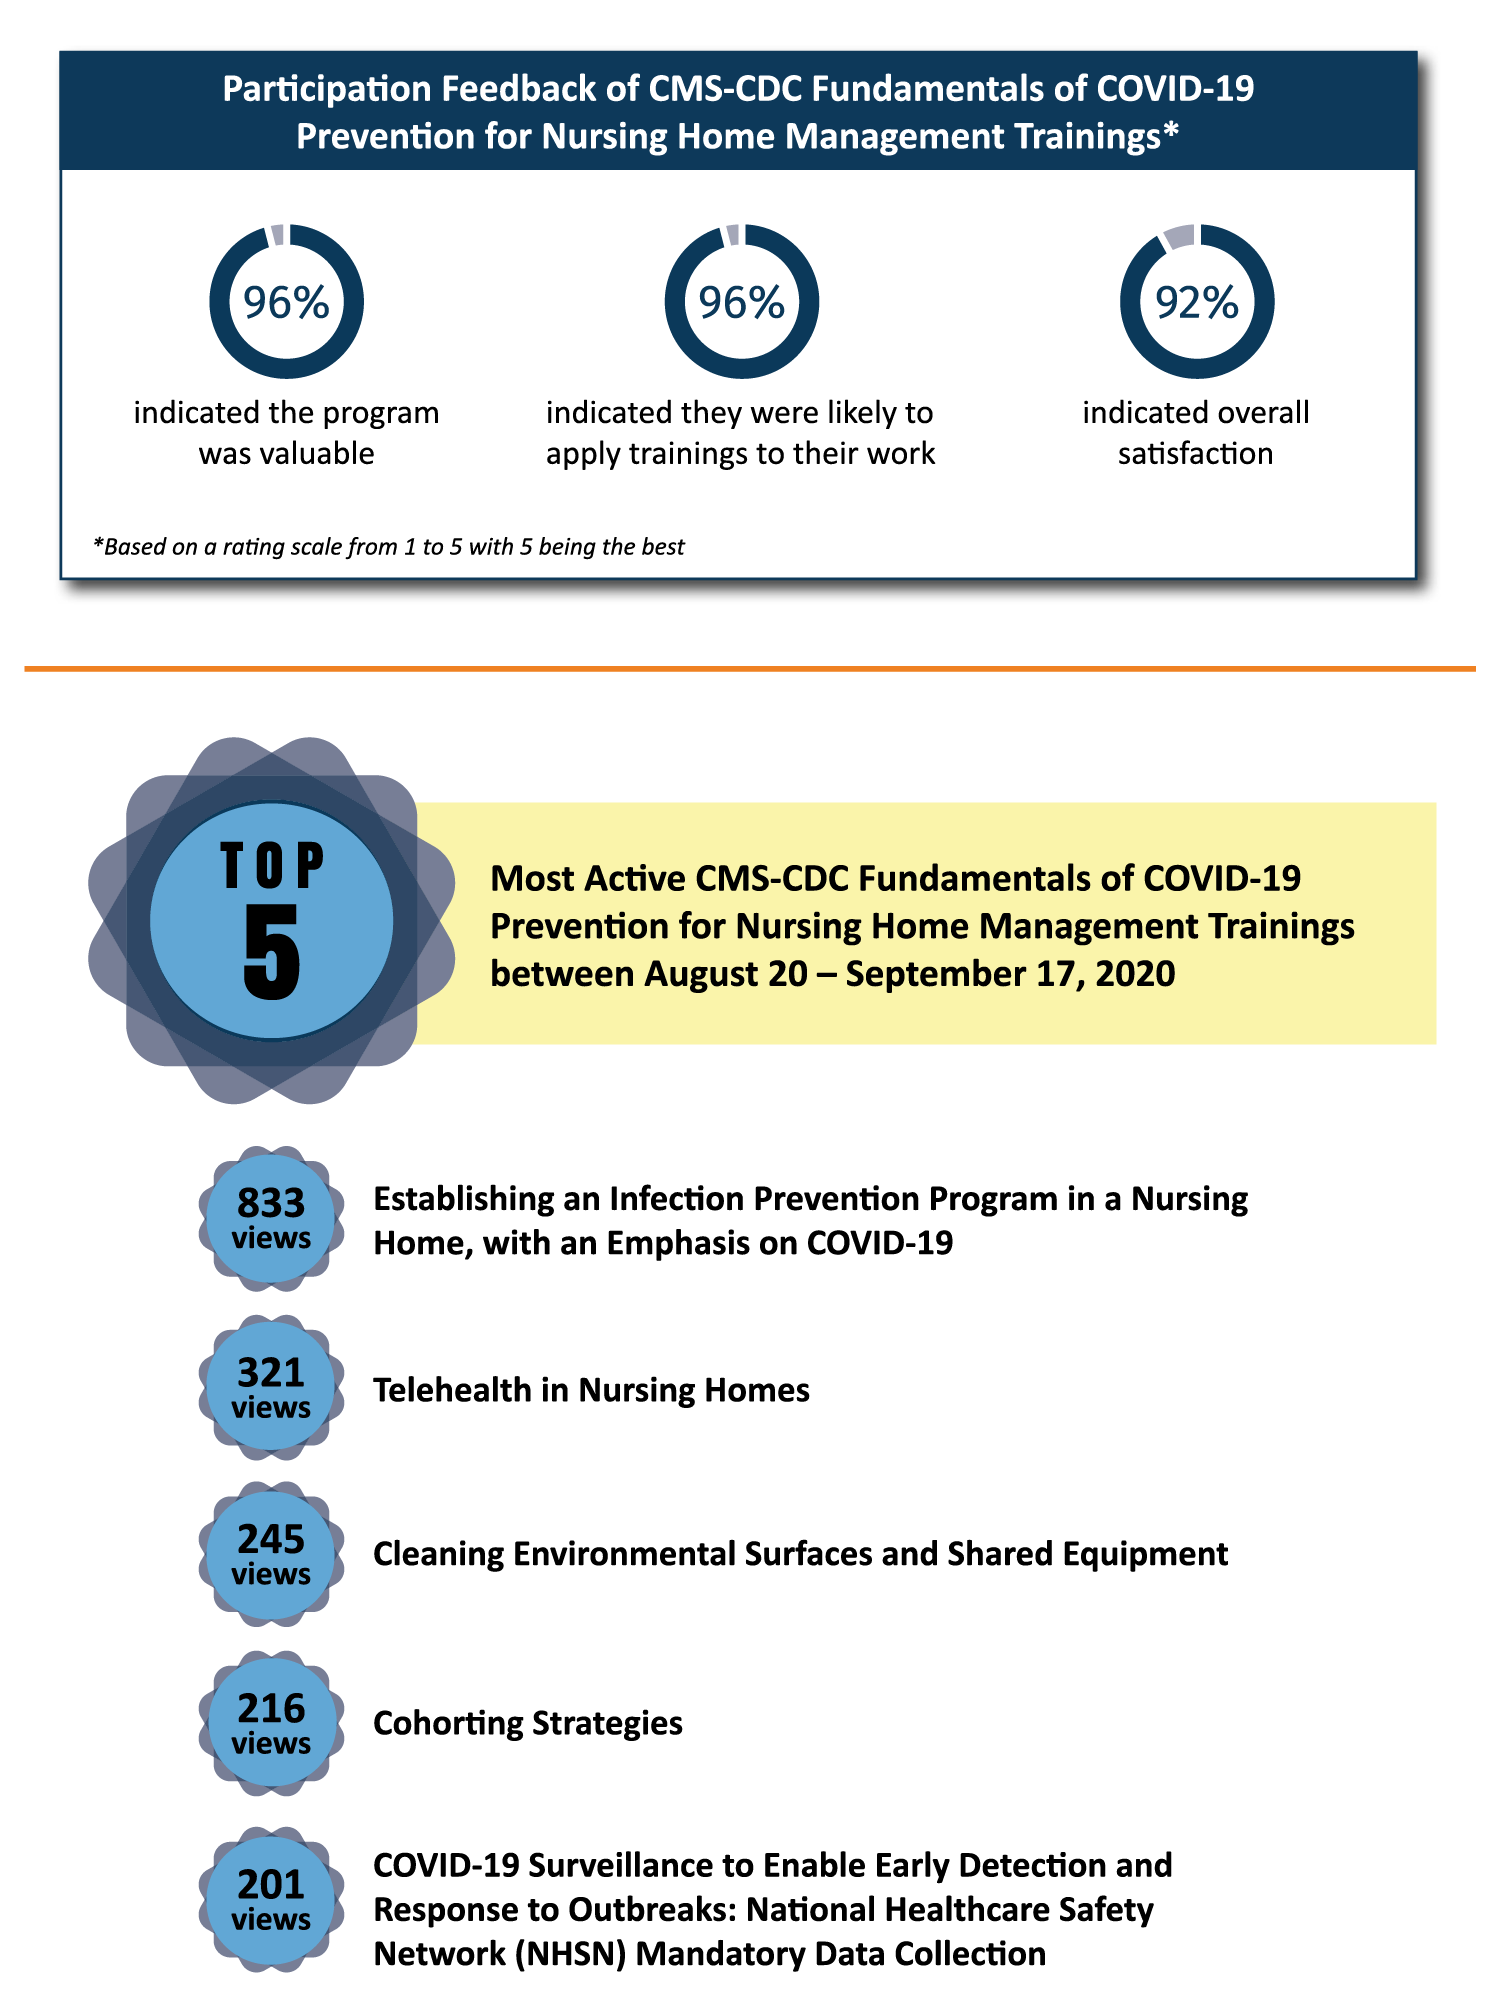 """""""Participation Feedback of CMS-CDC Fundamentals of COVID-19 Prevention for Nursing Home Management Trainings* Most Active CMS-CDC Fundamentals of COVID-19 Prevention for Nursing Home Management Trainings between August 20 – September 17, 2020 *Based on a rating scale from 1 to 5 with 5 being the best ninety six percent indicated the program was valuable 96 percent indicated they were likely to apply trainings to their work 92 percent indicated overall satisfaction Most Active CMS-CDC Fundamentals of COVID-19 Prevention for Nursing Home Management Trainings between August 20 – September 17, 2020 833 views Establishing an Infection Prevention Program in a Nursing Home, with an Emphasis on COVID-19 321 views Telehealth in Nursing Homes 245 views Cleaning Environmental Surfaces and Shared Equipment 216 views Cohorting Strategies 201 views COVID-19 Surveillance to Enable Early Detection and Response to Outbreaks: National Healthcare Safety Network (NHSN) Mandatory Data Collection"""""""